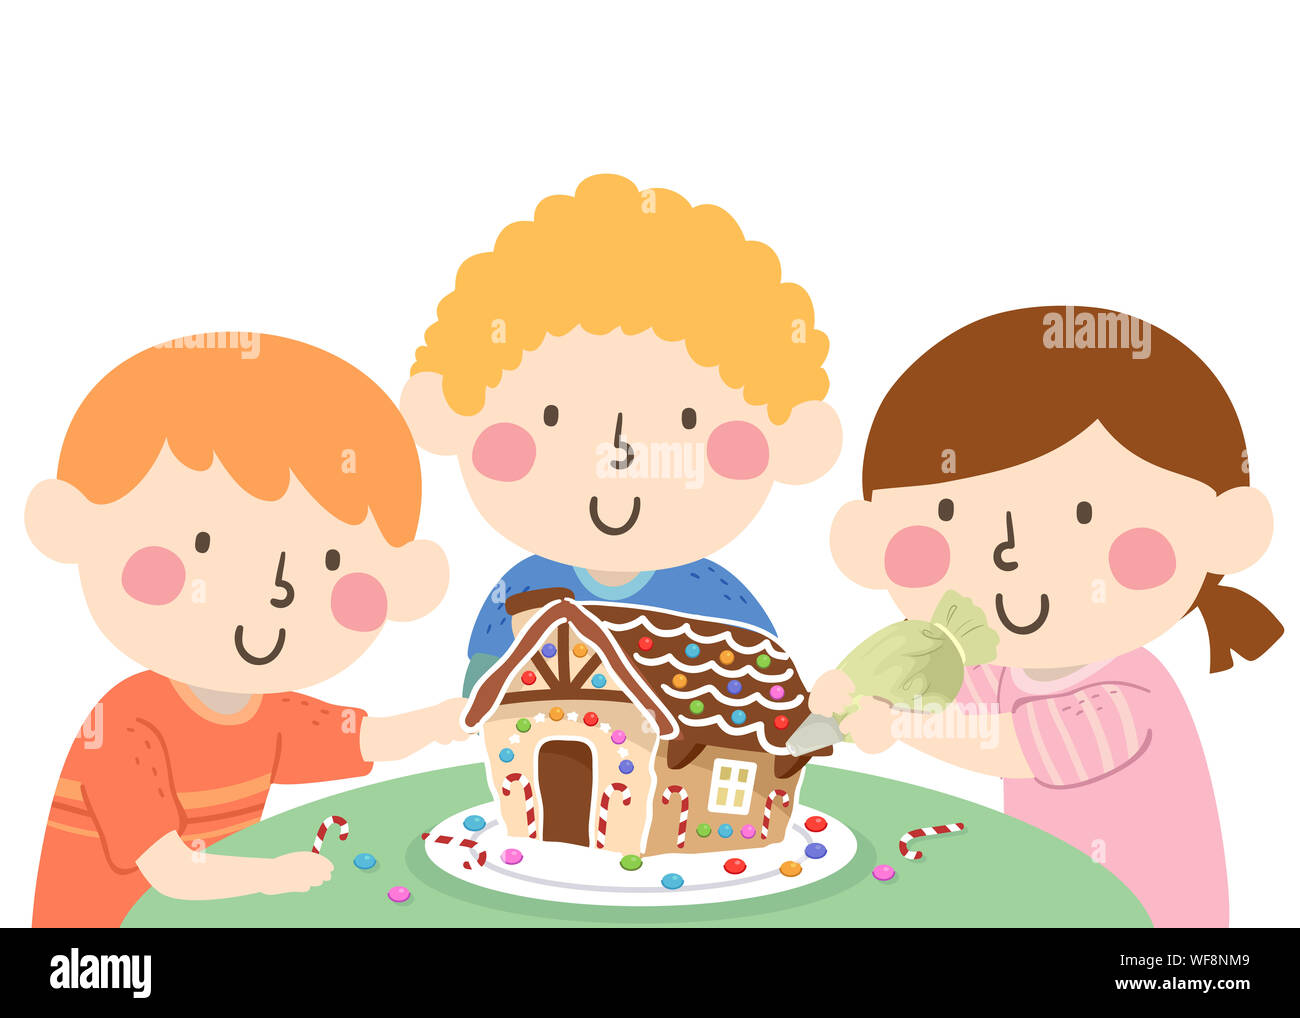 Illustration Of Kids Decorating A Gingerbread House On The